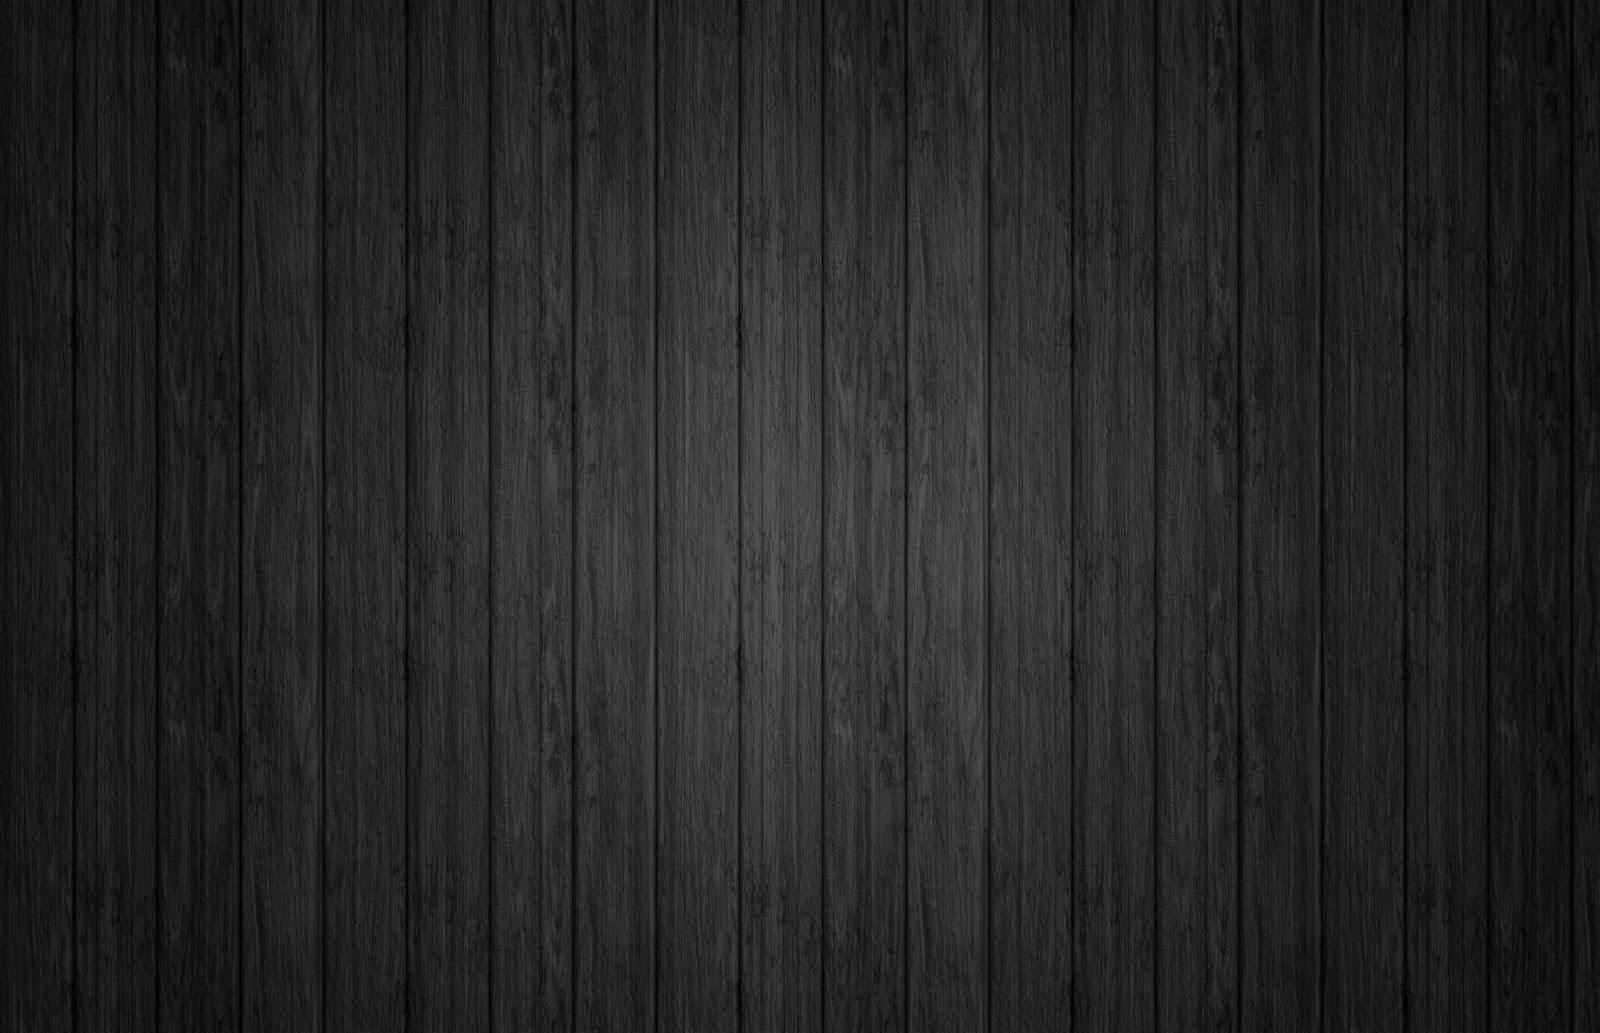 Plain-design-pattern-dark-background-image-HD-resolution-latest-pack.jpg